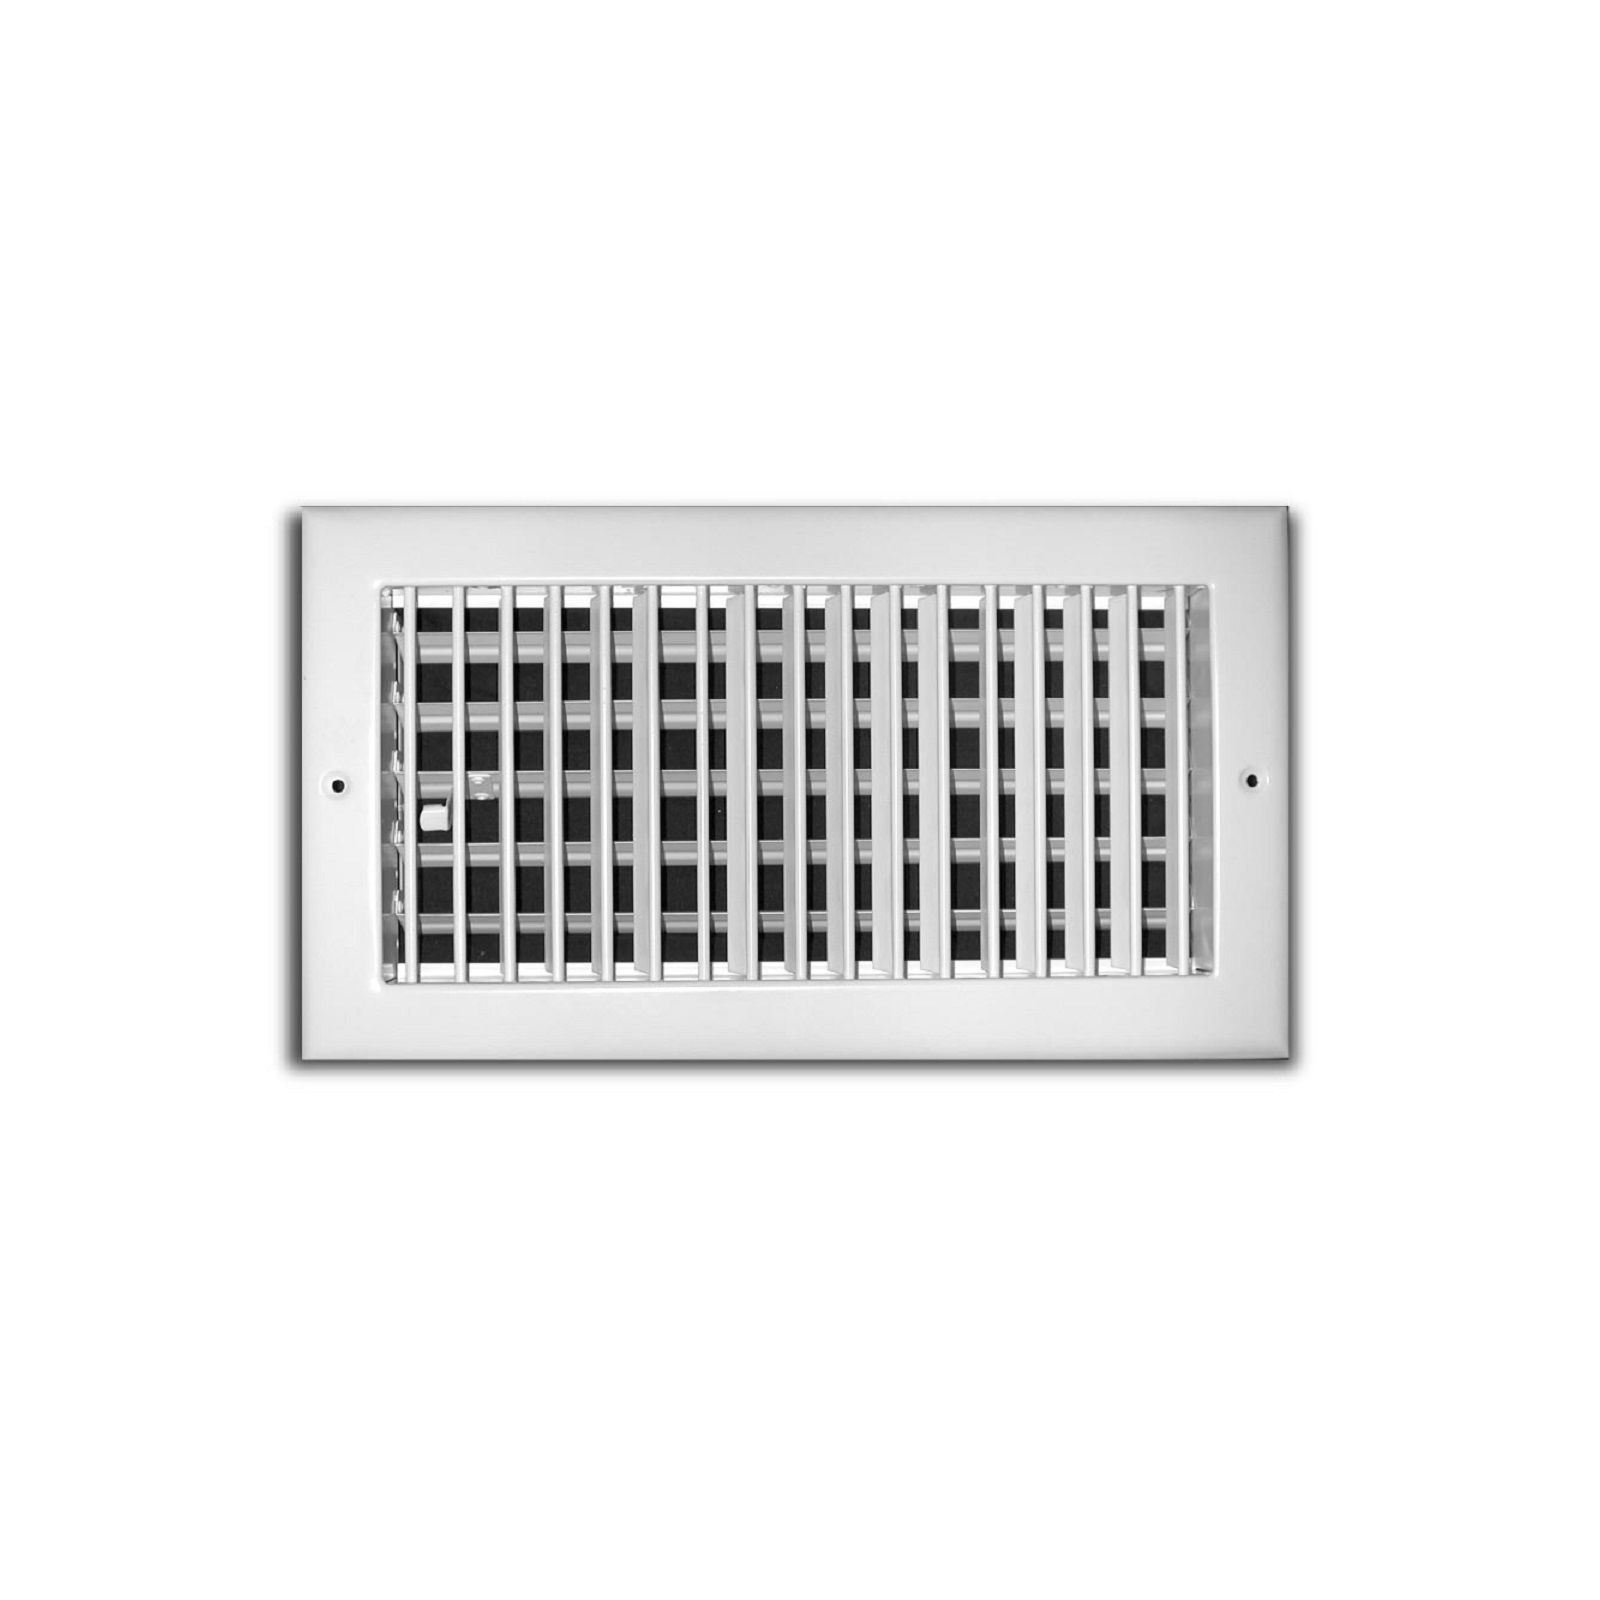 "TRUaire 210VM 08X08 - Steel Adjustable 1-Way Wall/Ceiling Register With Multi Shutter Damper, White, 08"" X 08"""